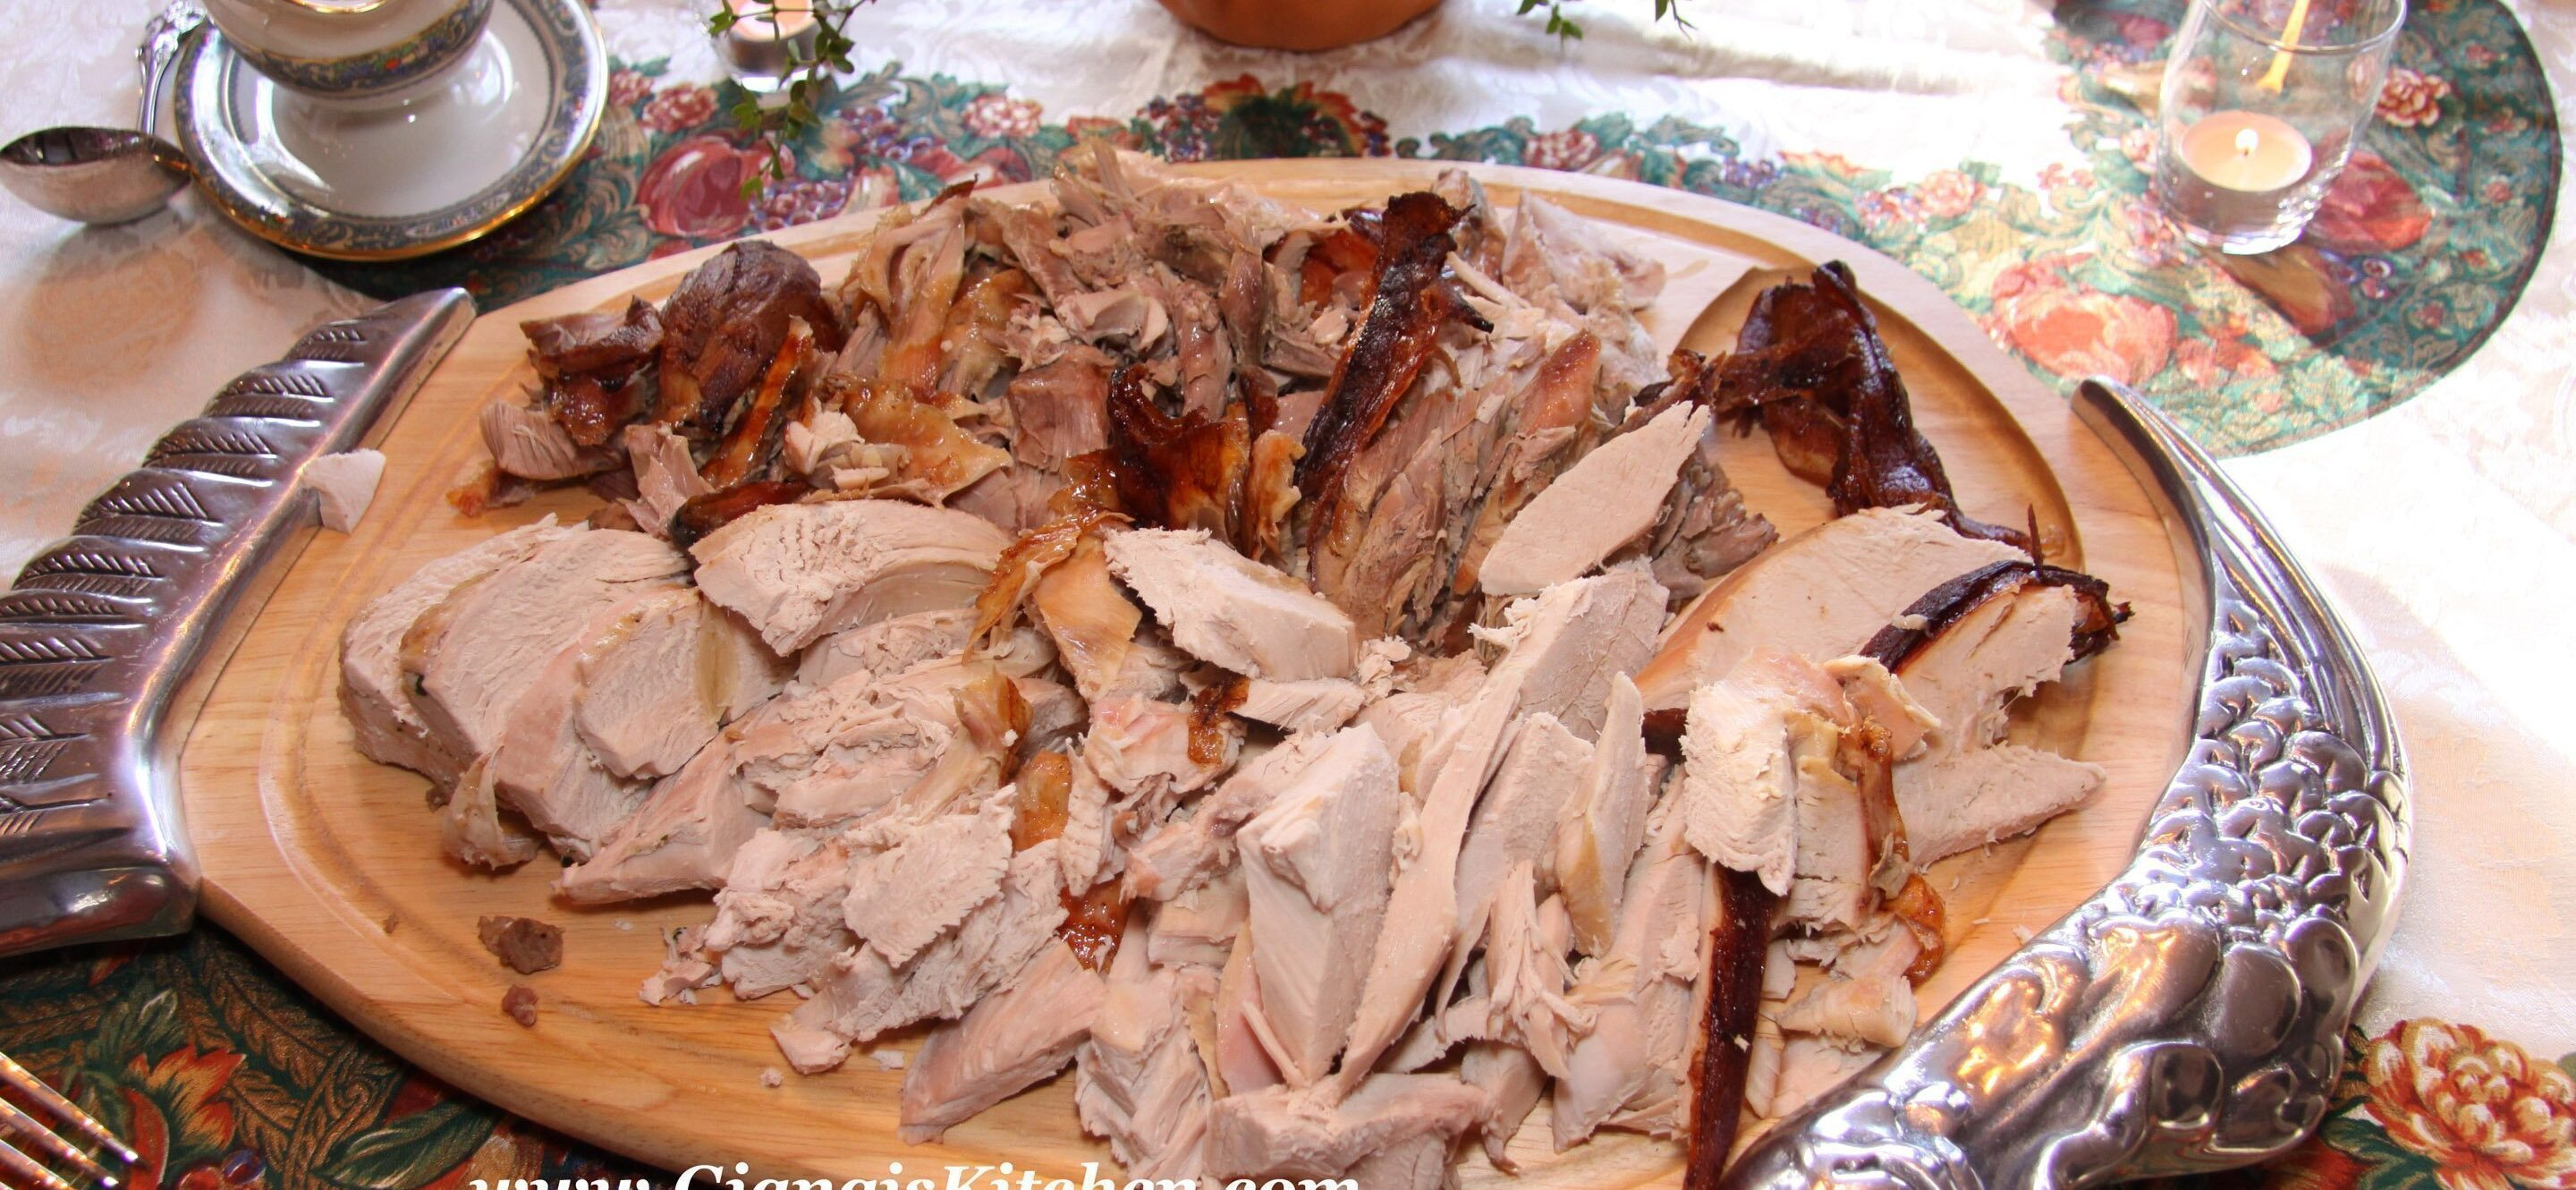 Chestnut Stuffed Turkey